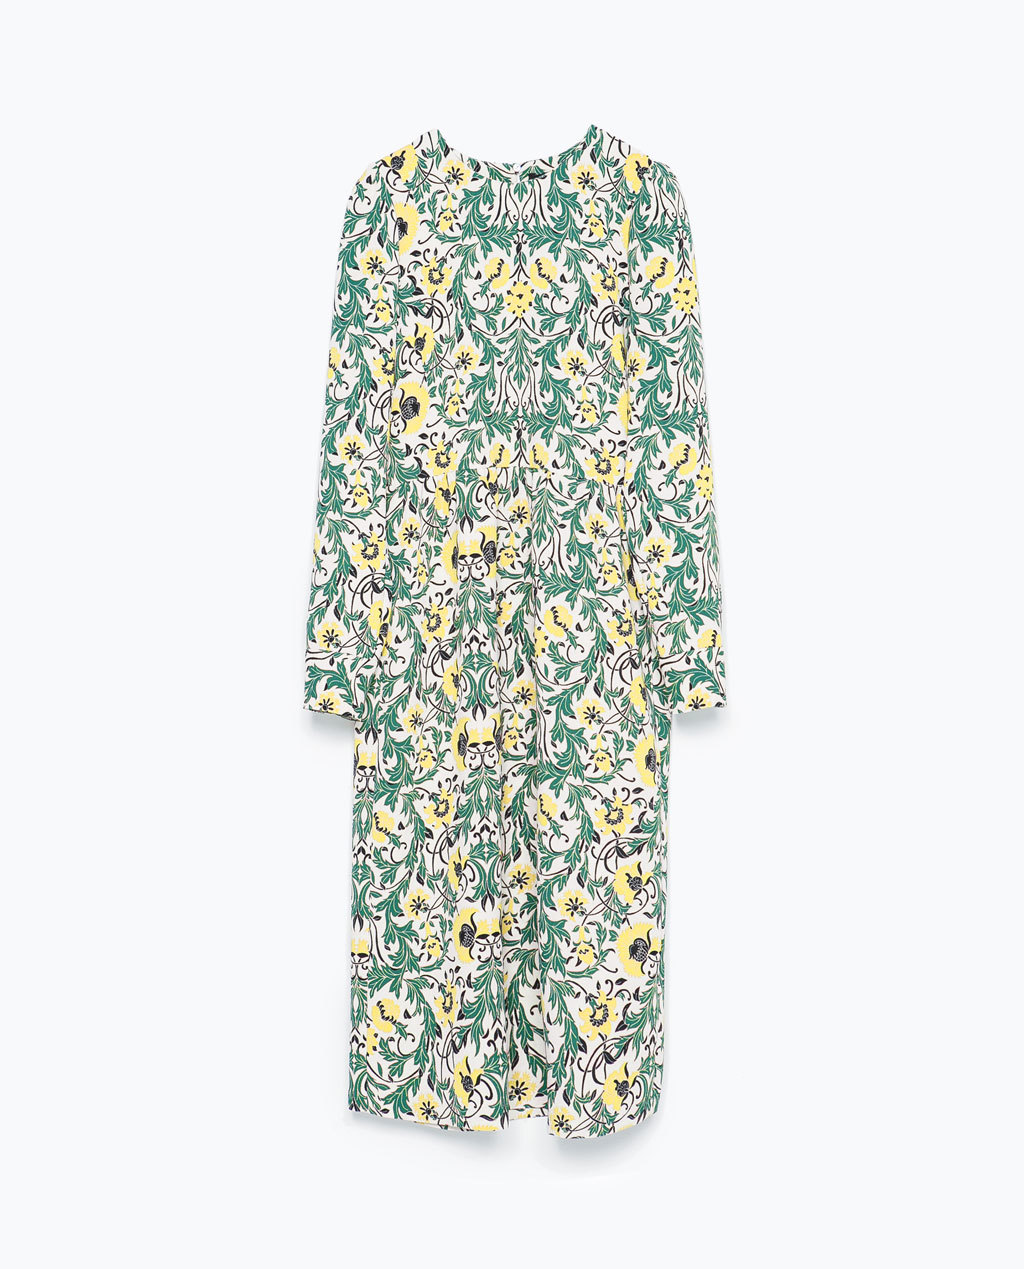 Gathered Seam Dress - style: tea dress; length: below the knee; neckline: round neck; secondary colour: yellow; predominant colour: emerald green; occasions: casual, occasion, creative work; fit: body skimming; fibres: polyester/polyamide - 100%; back detail: keyhole/peephole detail at back; sleeve length: long sleeve; sleeve style: standard; pattern type: fabric; pattern size: big & busy; pattern: florals; texture group: other - light to midweight; season: s/s 2015